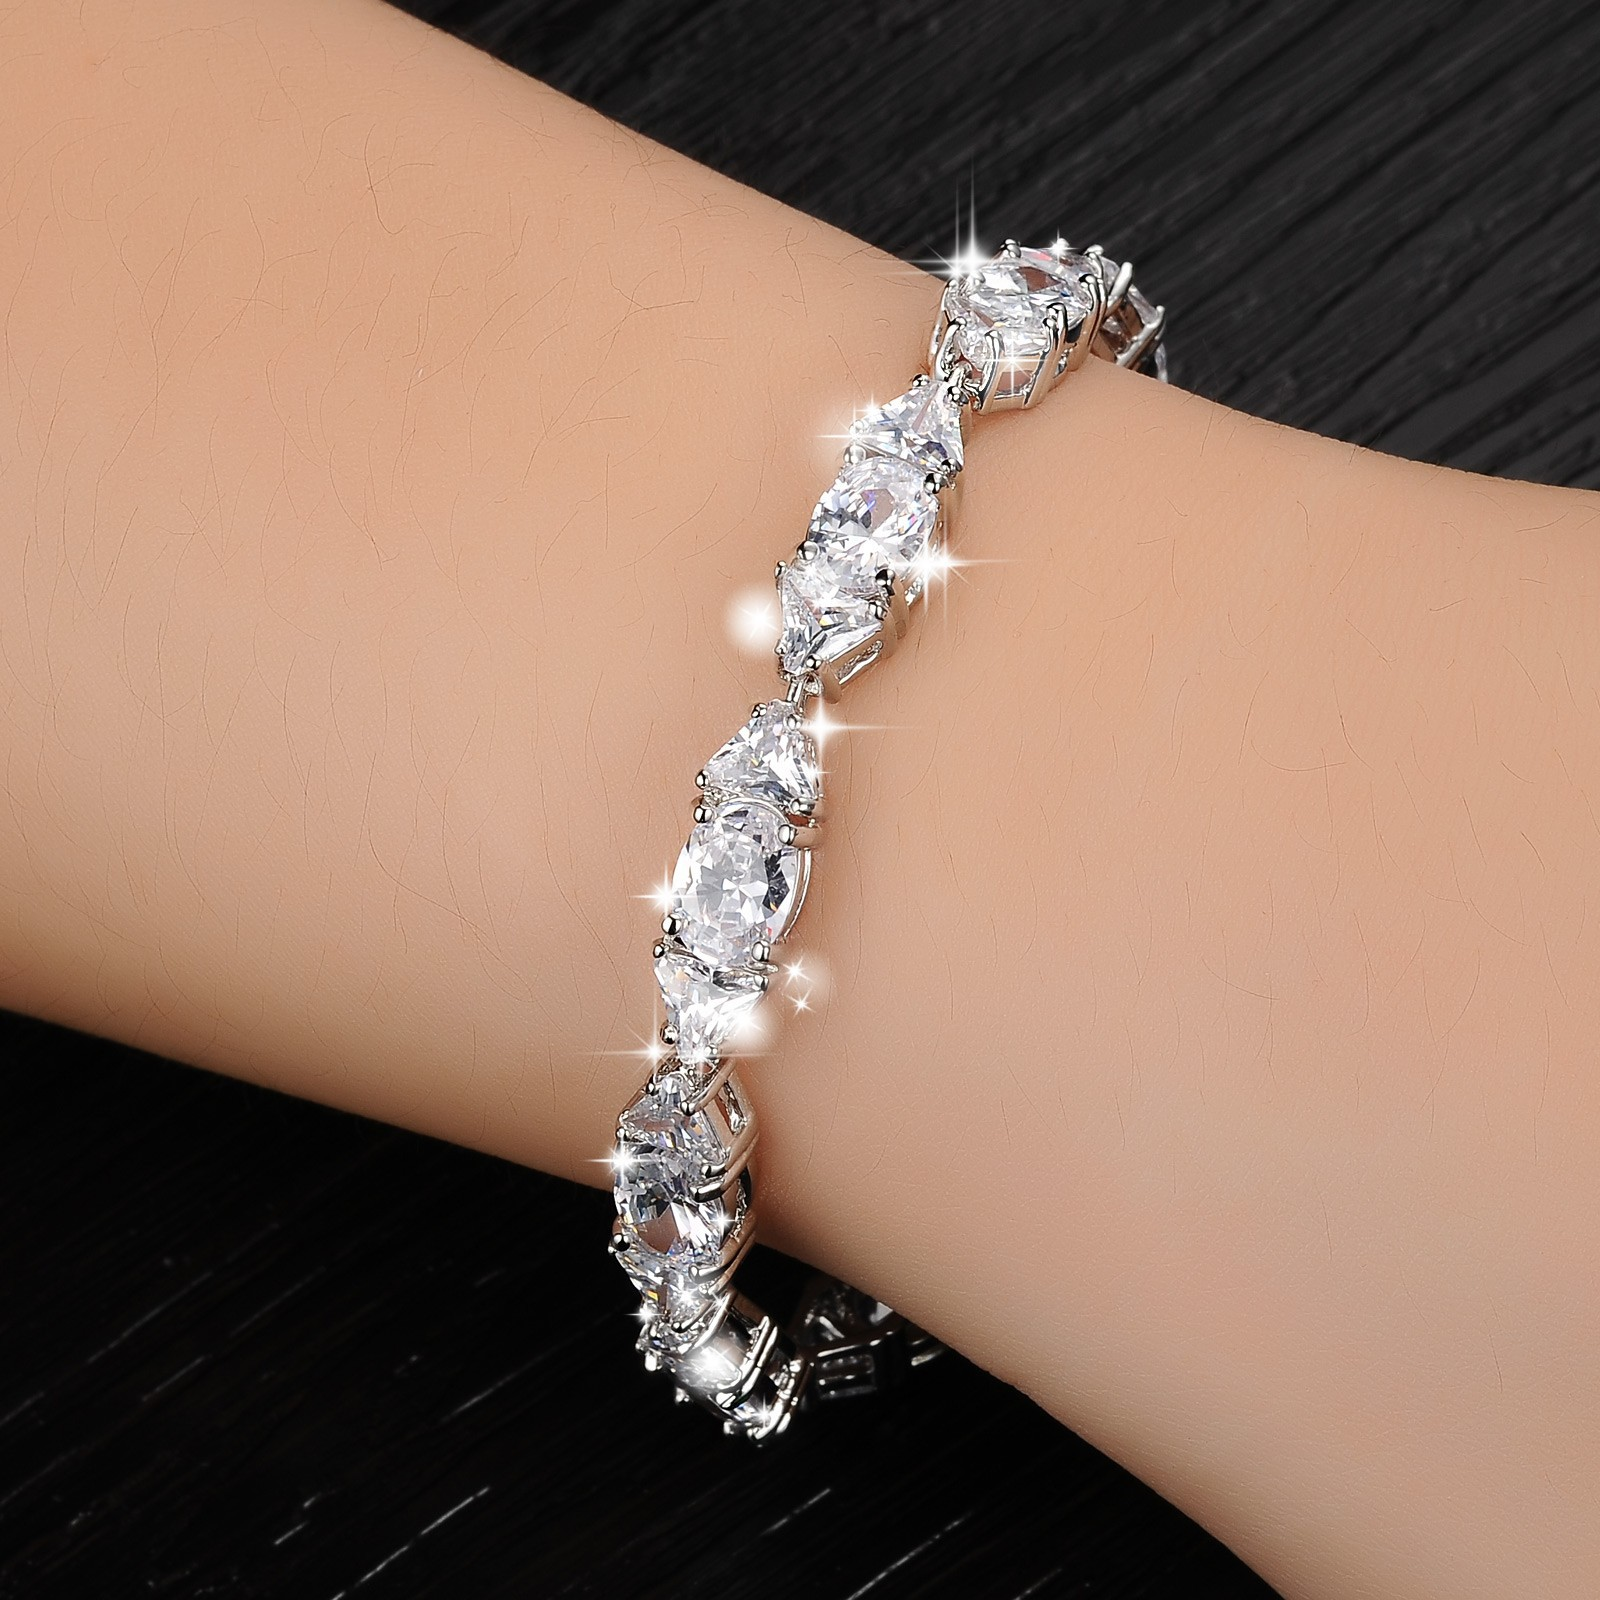 Hot Sale Lady's Exquisite Jewelry Popular Adorn Cute Sweet Girl Style Zircon Bracelets Office Style Bangles High Quality M8694